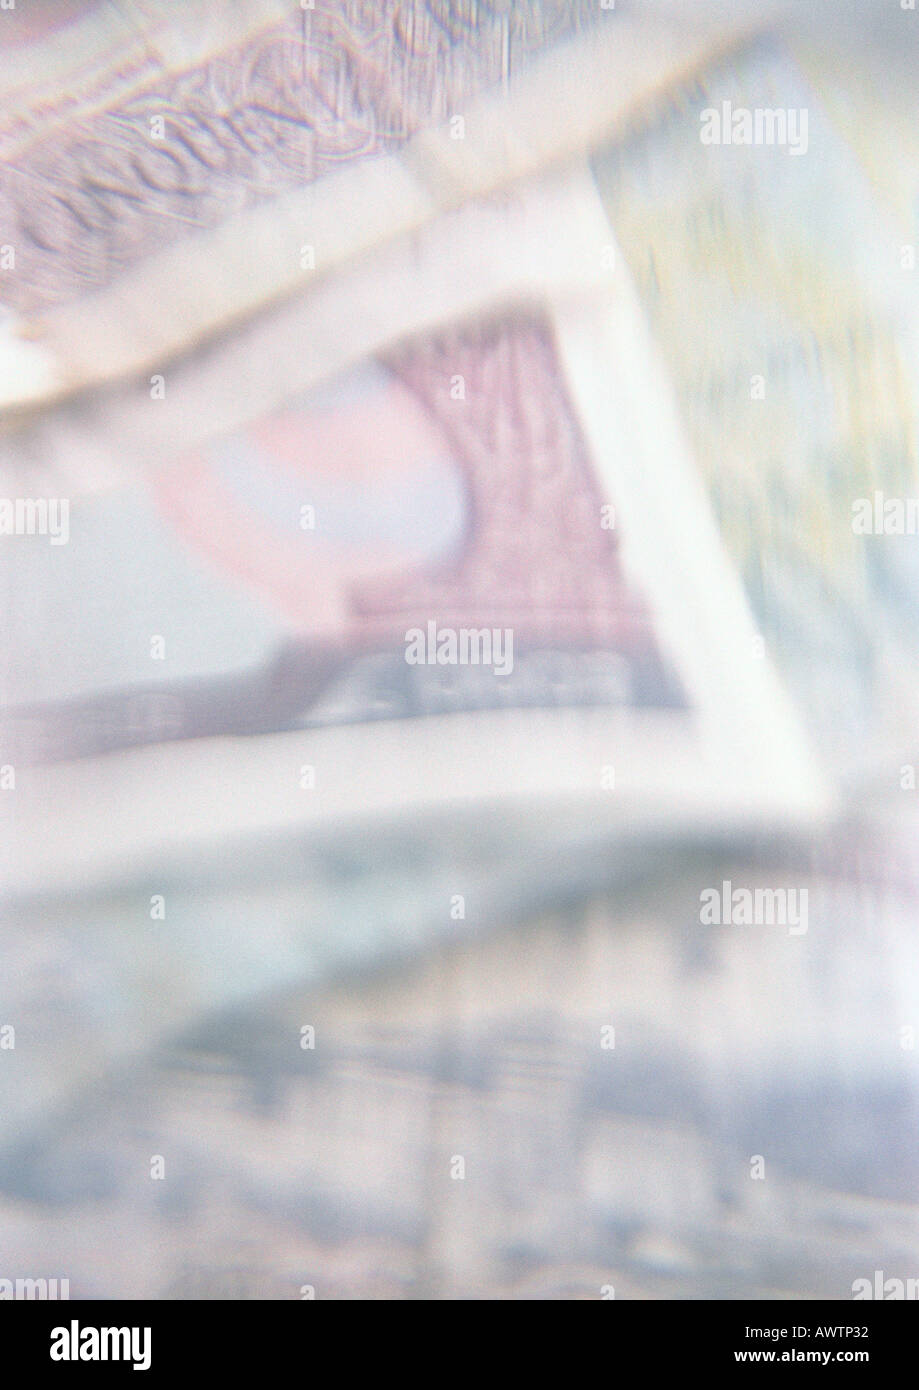 Paper currency, close-up - Stock Image